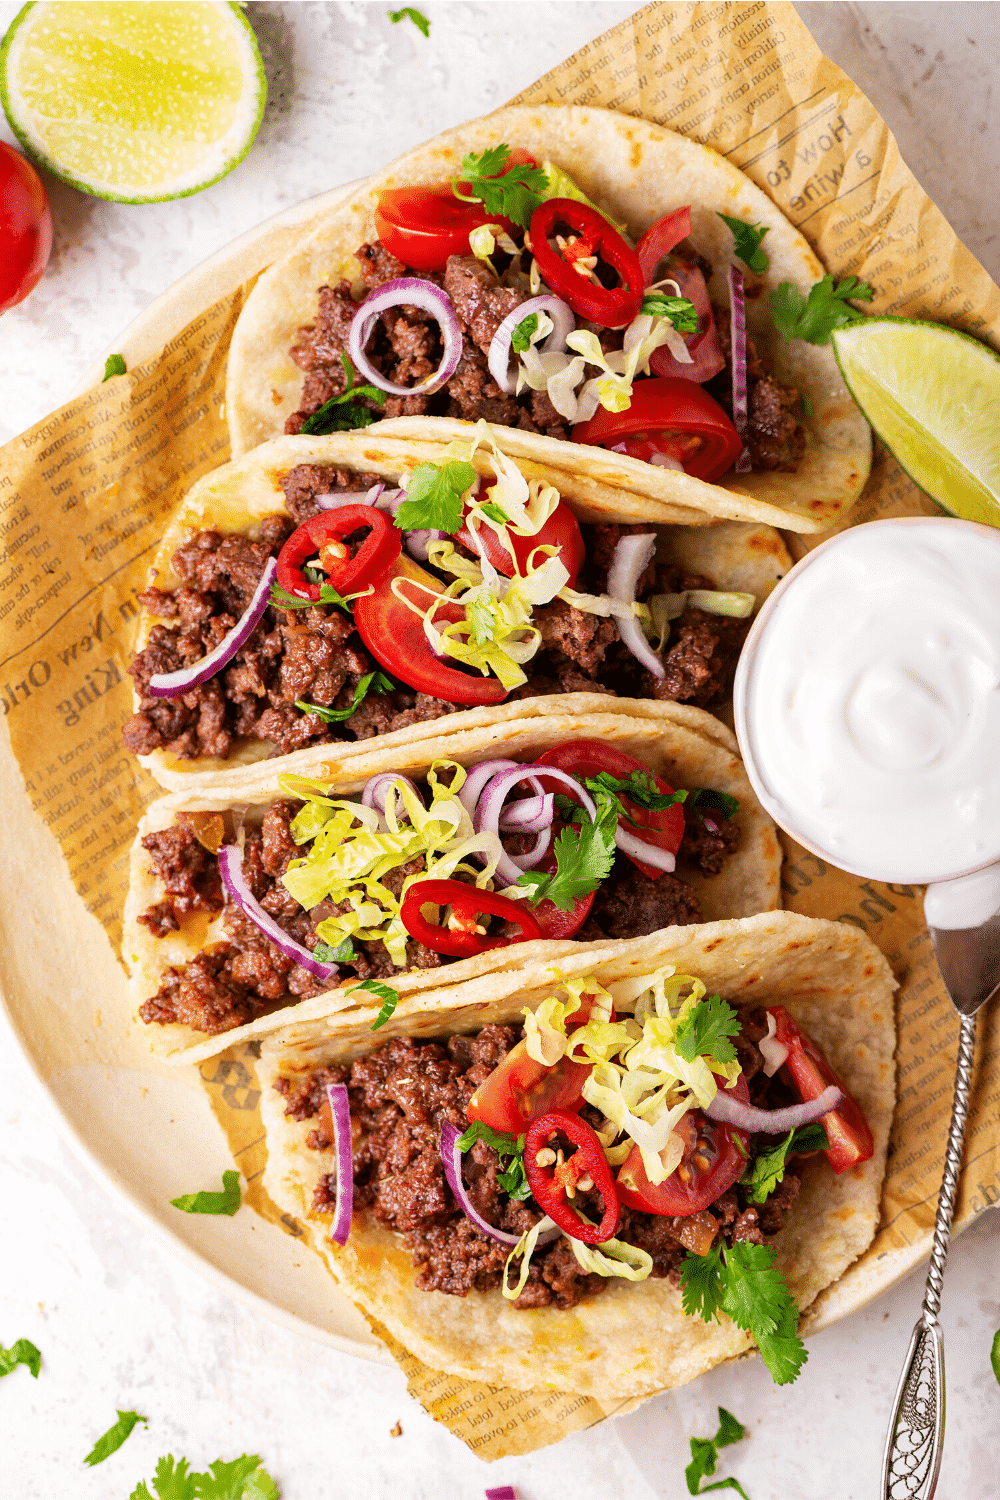 A row of four ground beef tacos on a piece of newspaper. To the right of the two middle tacos it's a small cup of sour cream.